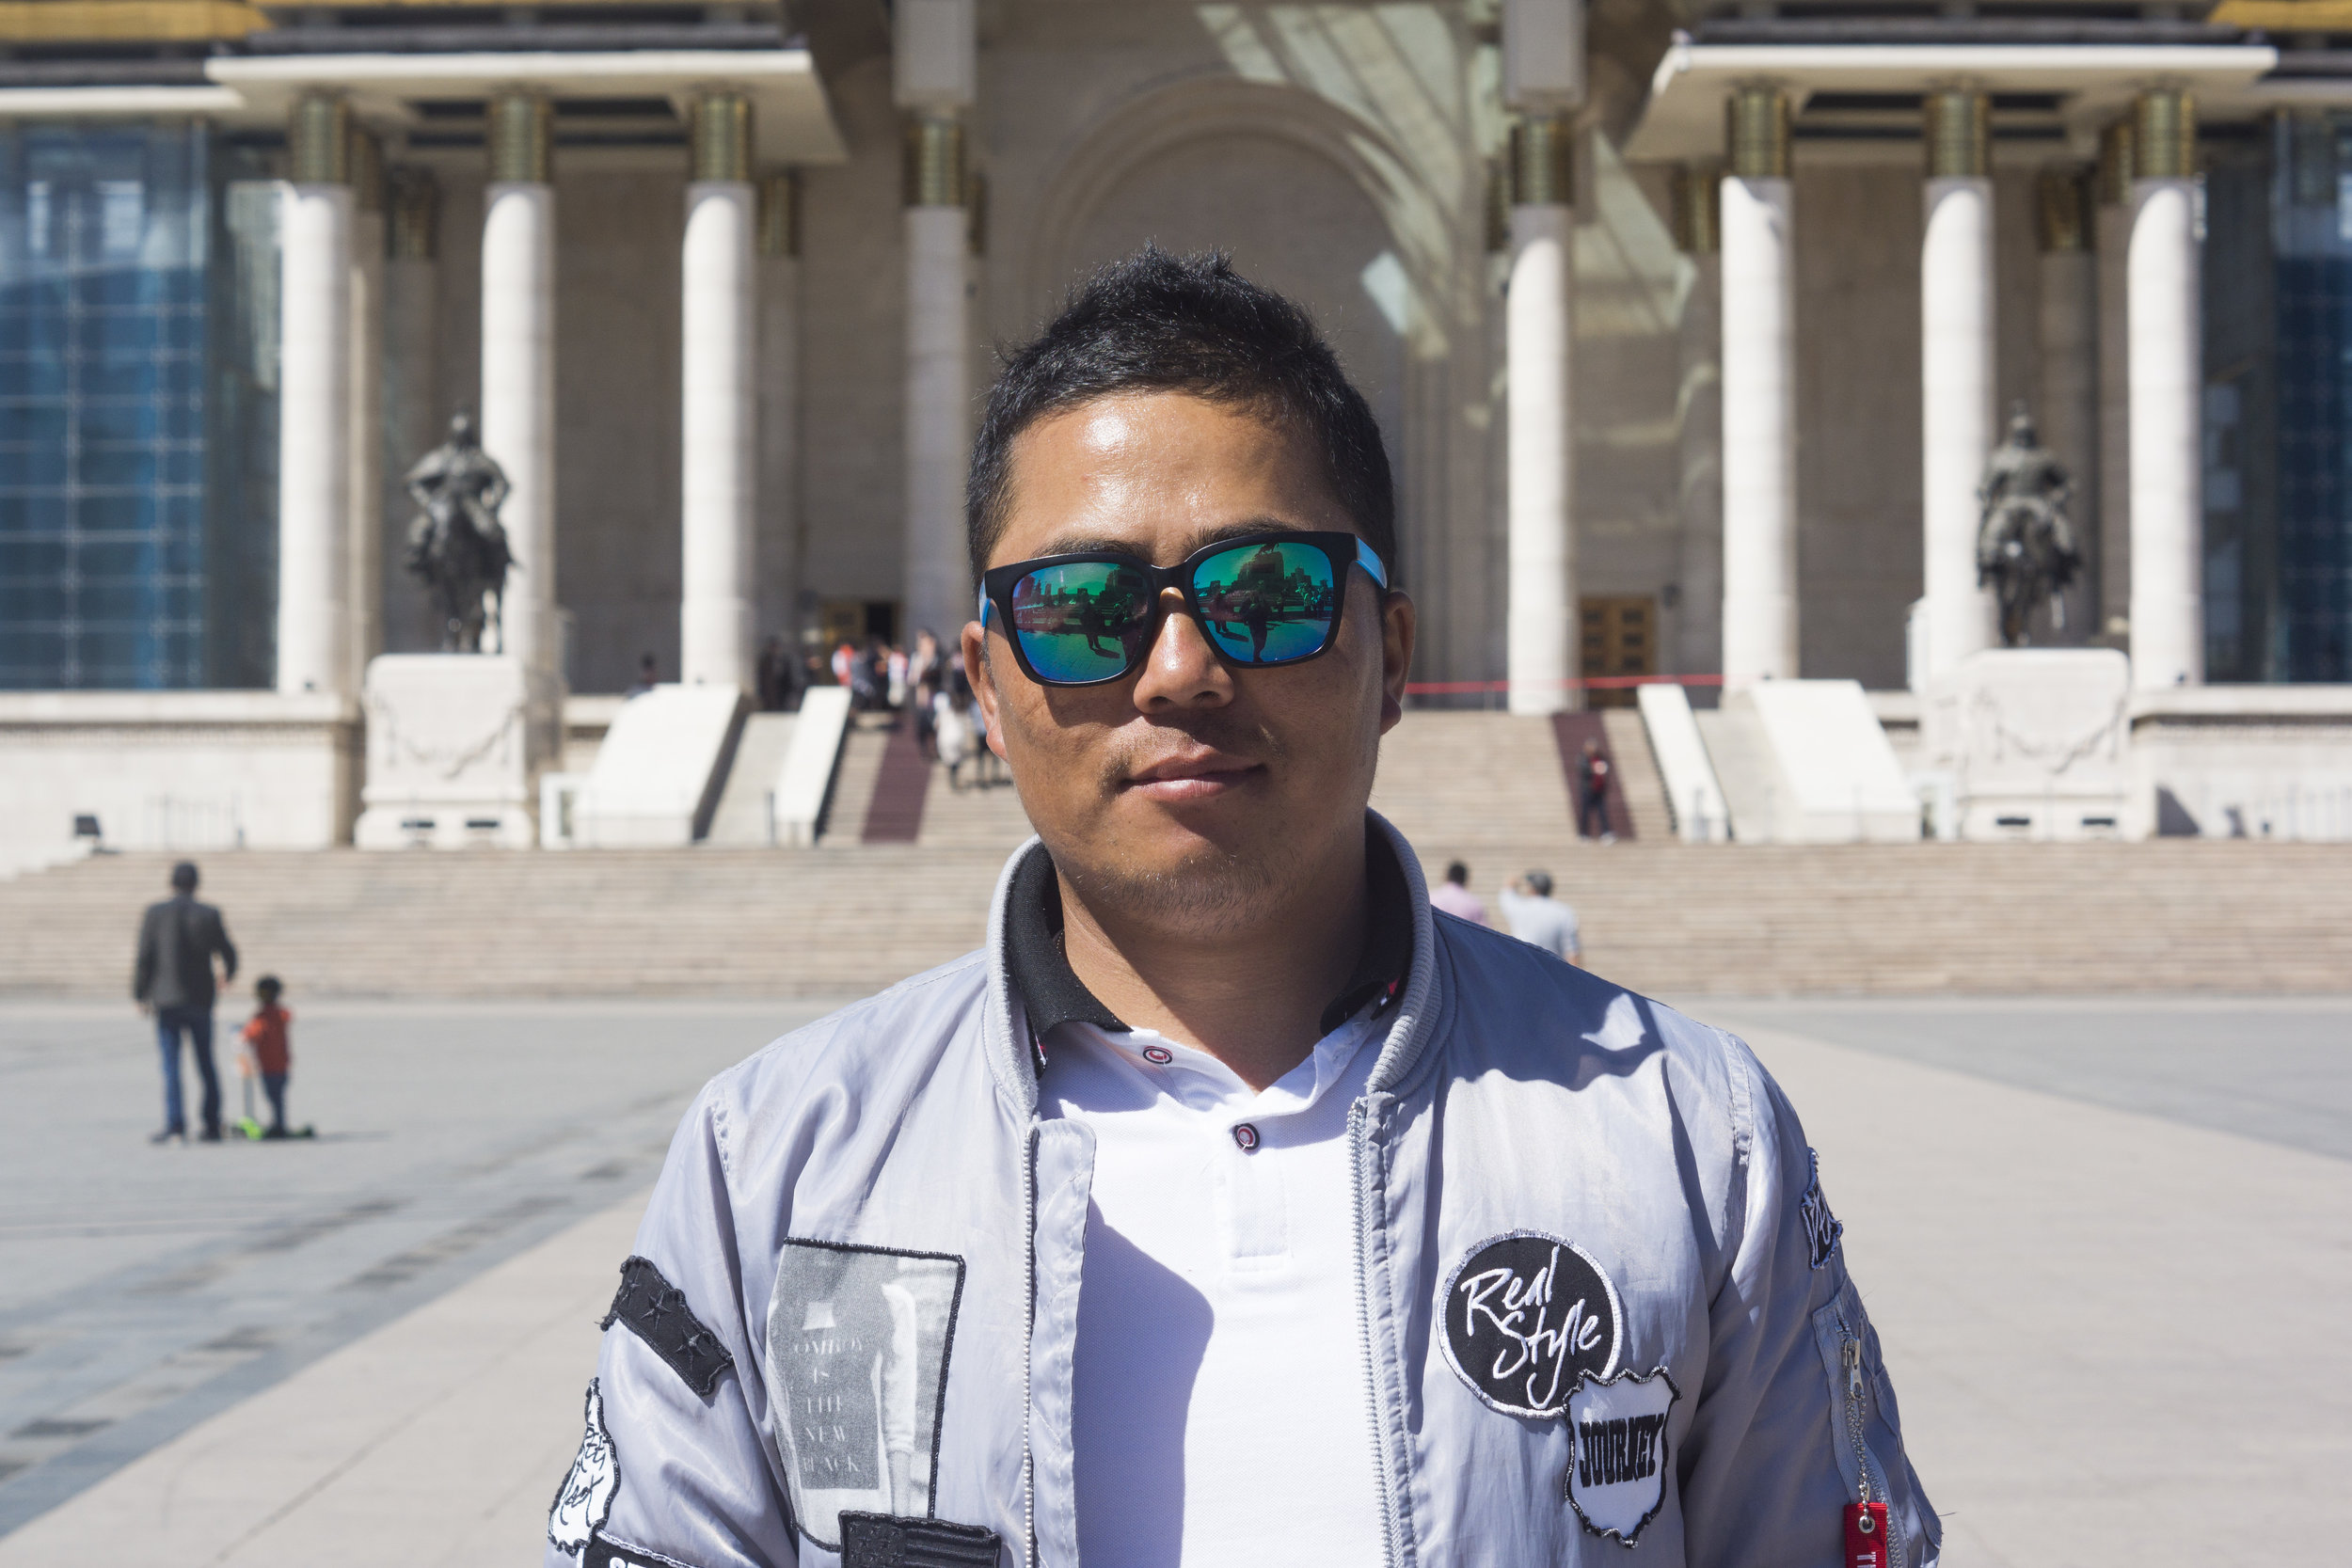 Ogi, 35, hoped the summit would bring further attention to Mongolia.